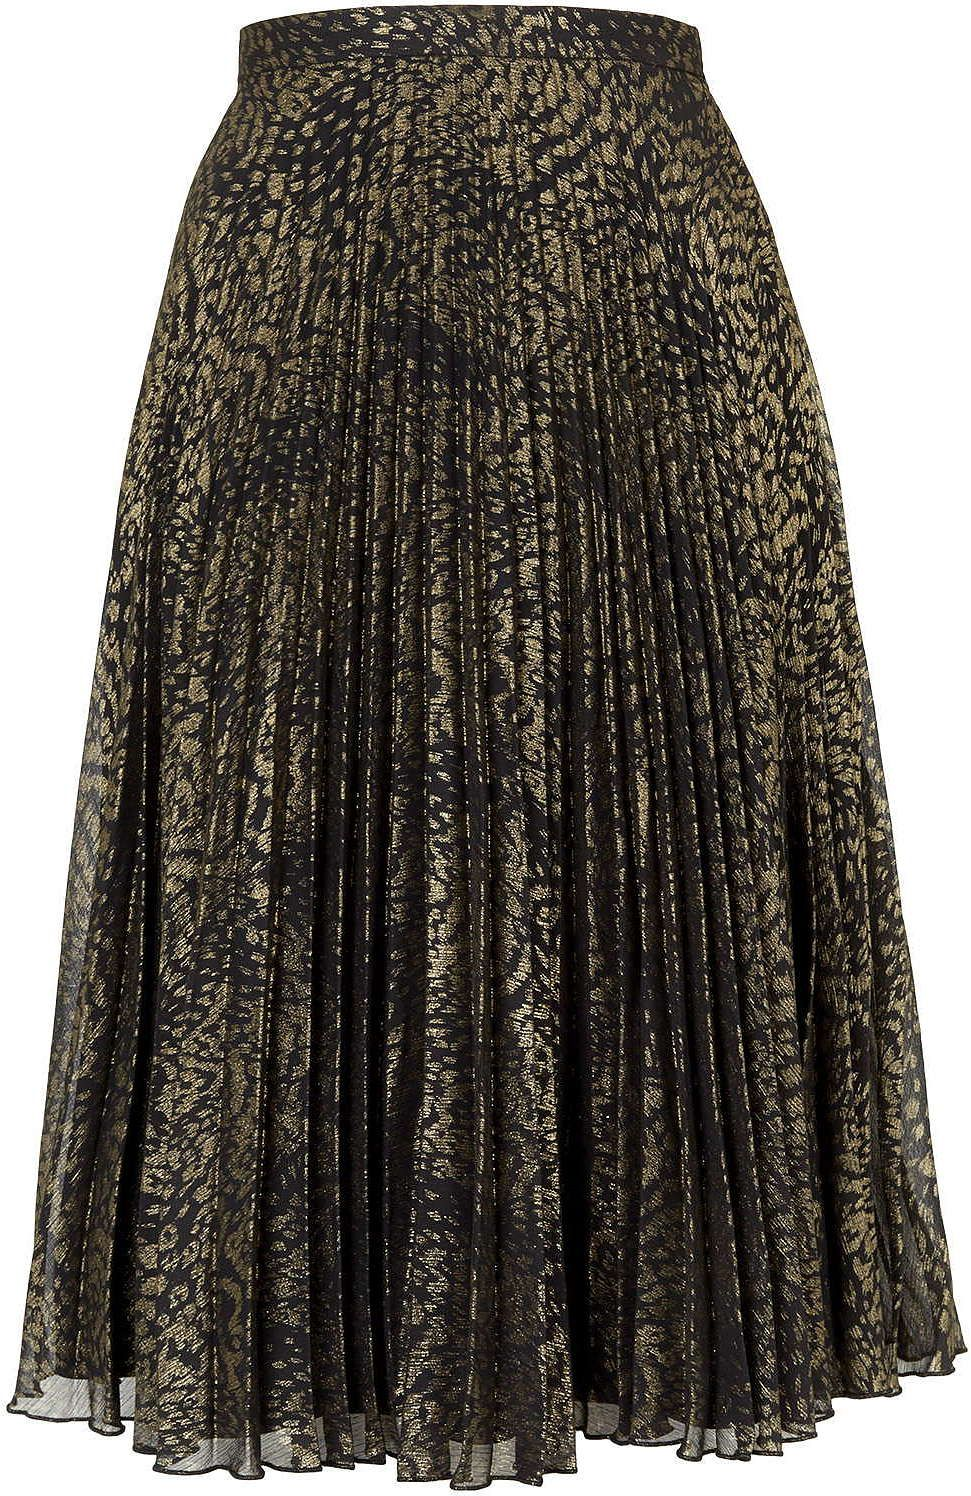 81eb9f1a3 Womens gold animal print pleated midi skirt from Topshop - £60 at  ClothingByColour.com